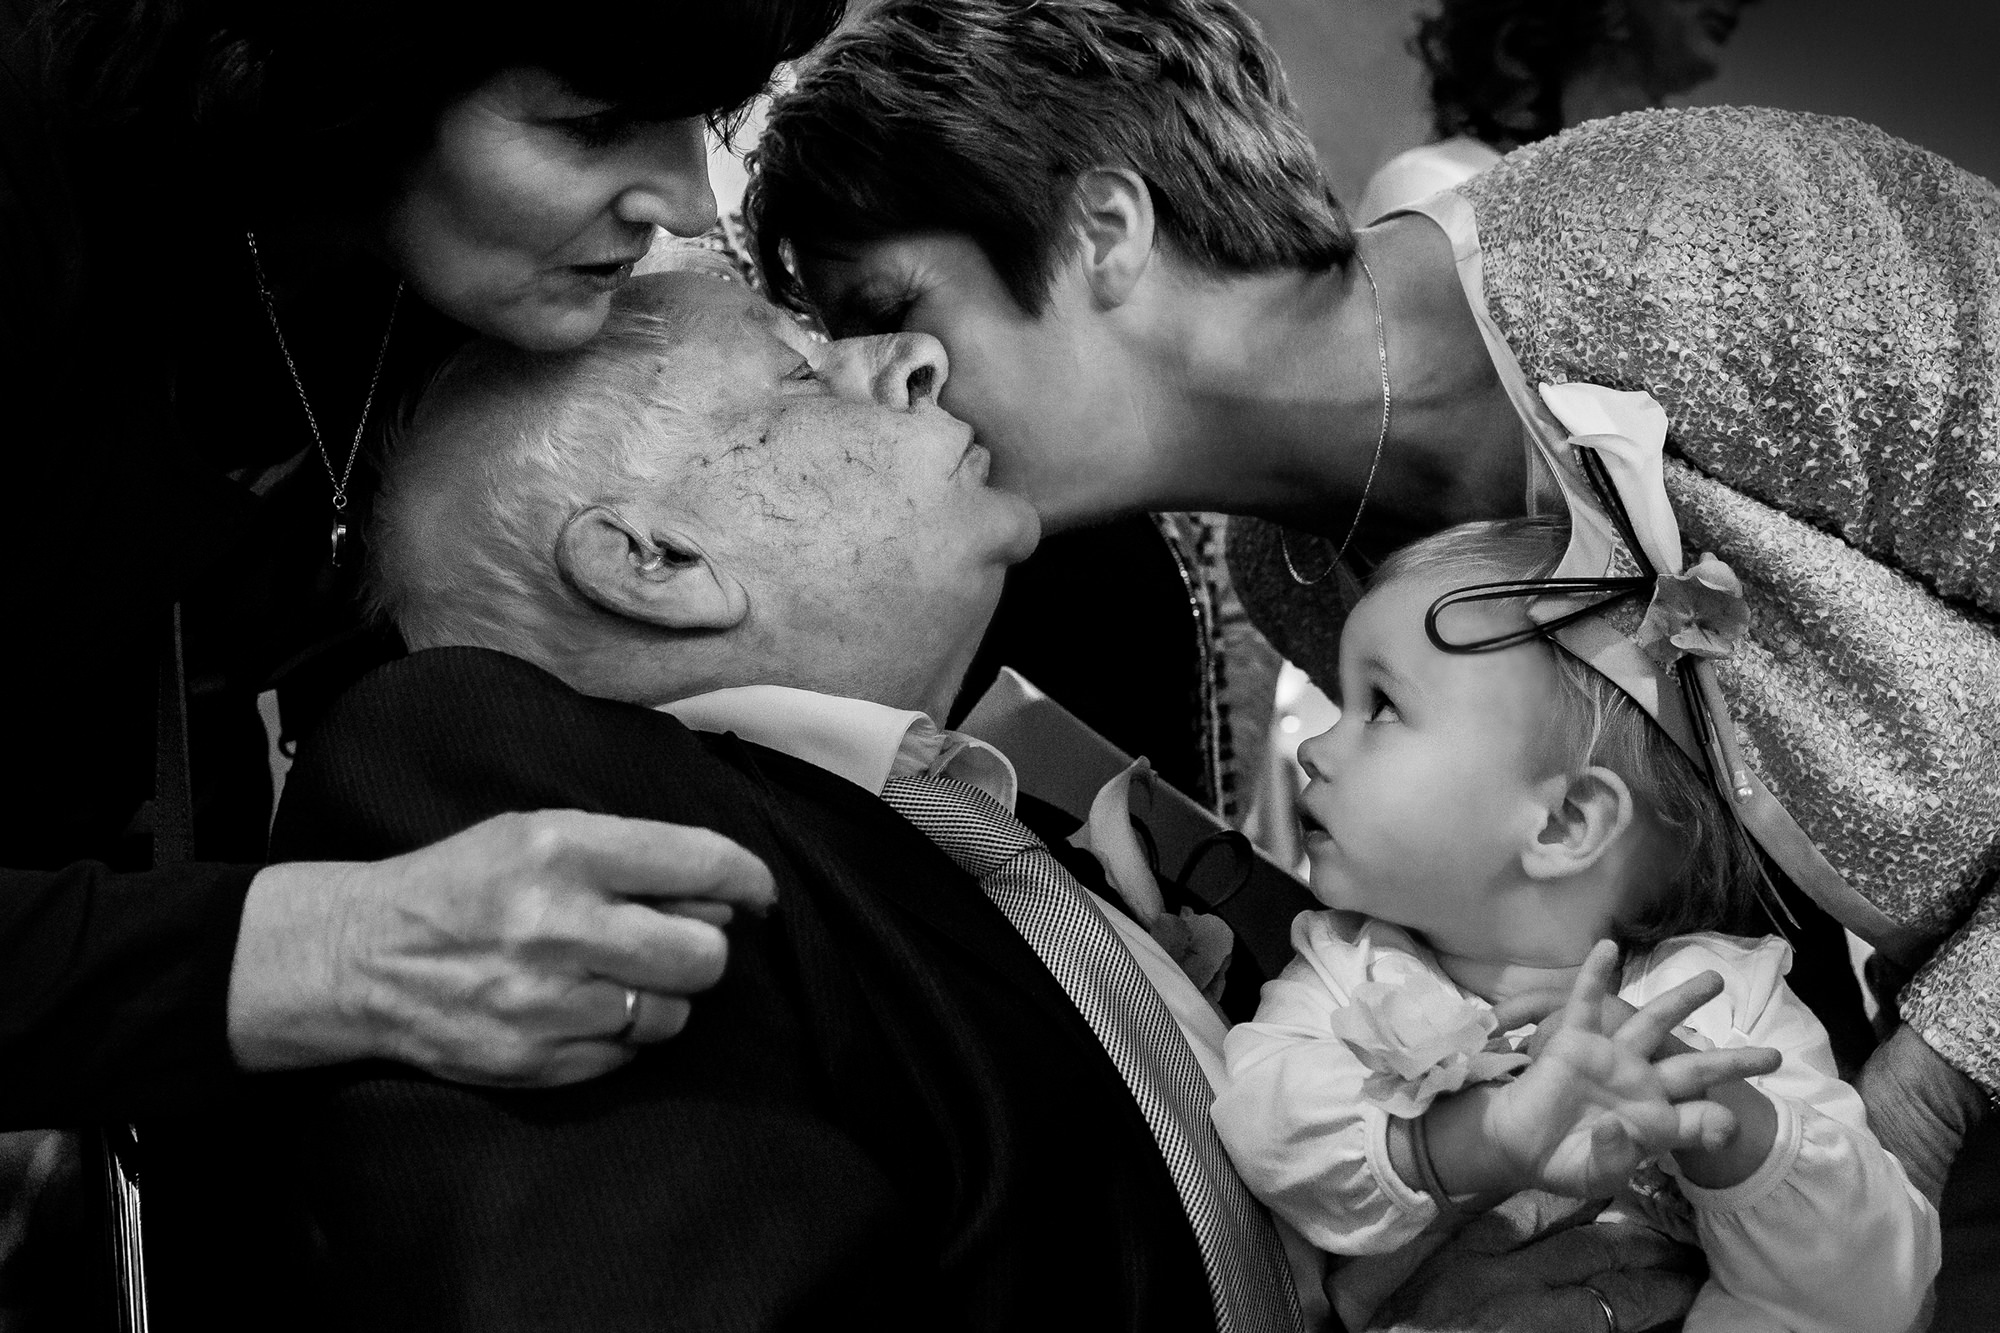 Family kiss with grandpa holding grandchild photo by Fotobelle: Isabelle Hattink